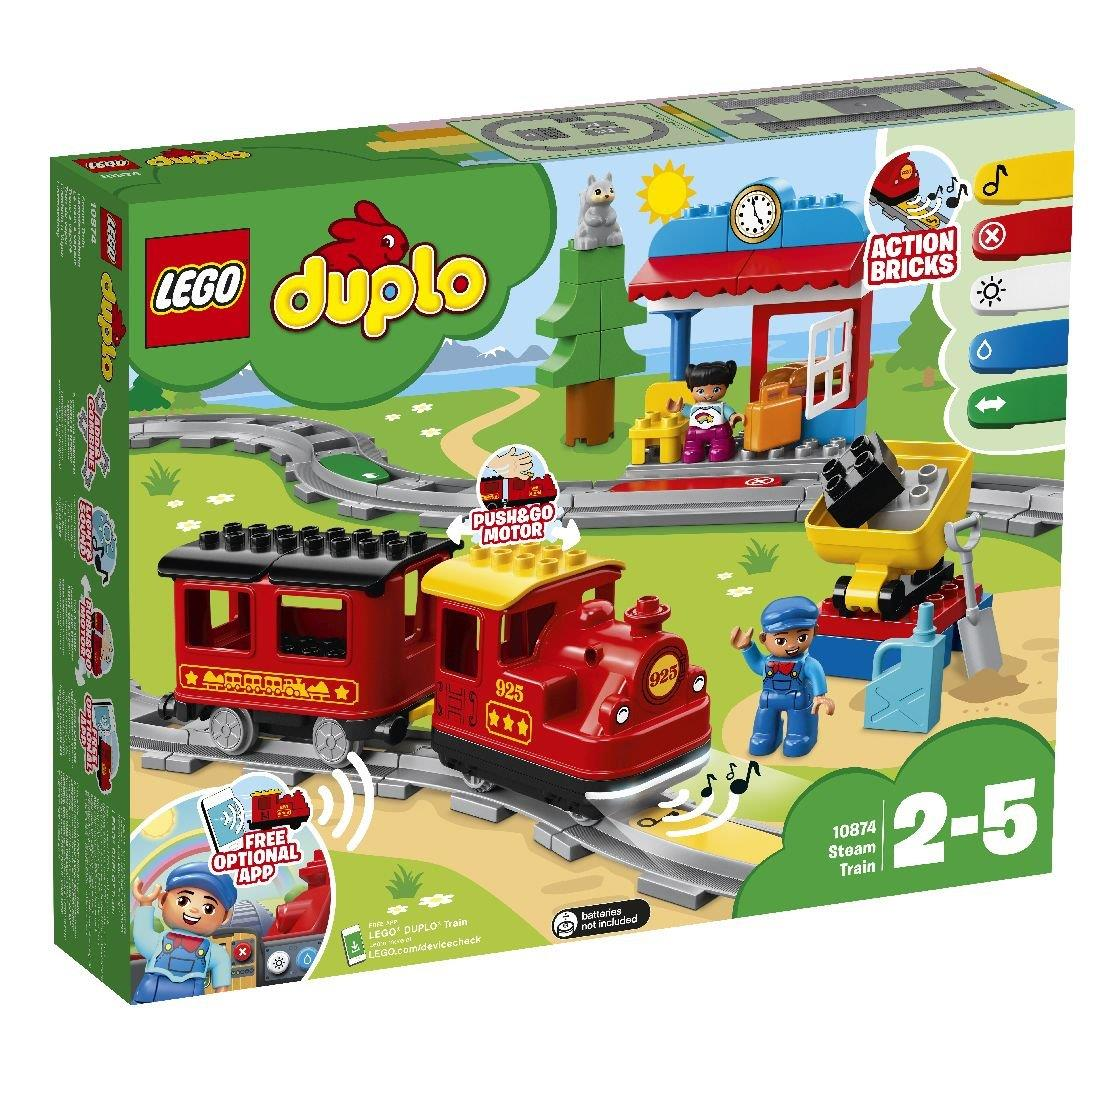 LEGO DUPLO Steam Railway Train - 10874 LEGO konstruktors